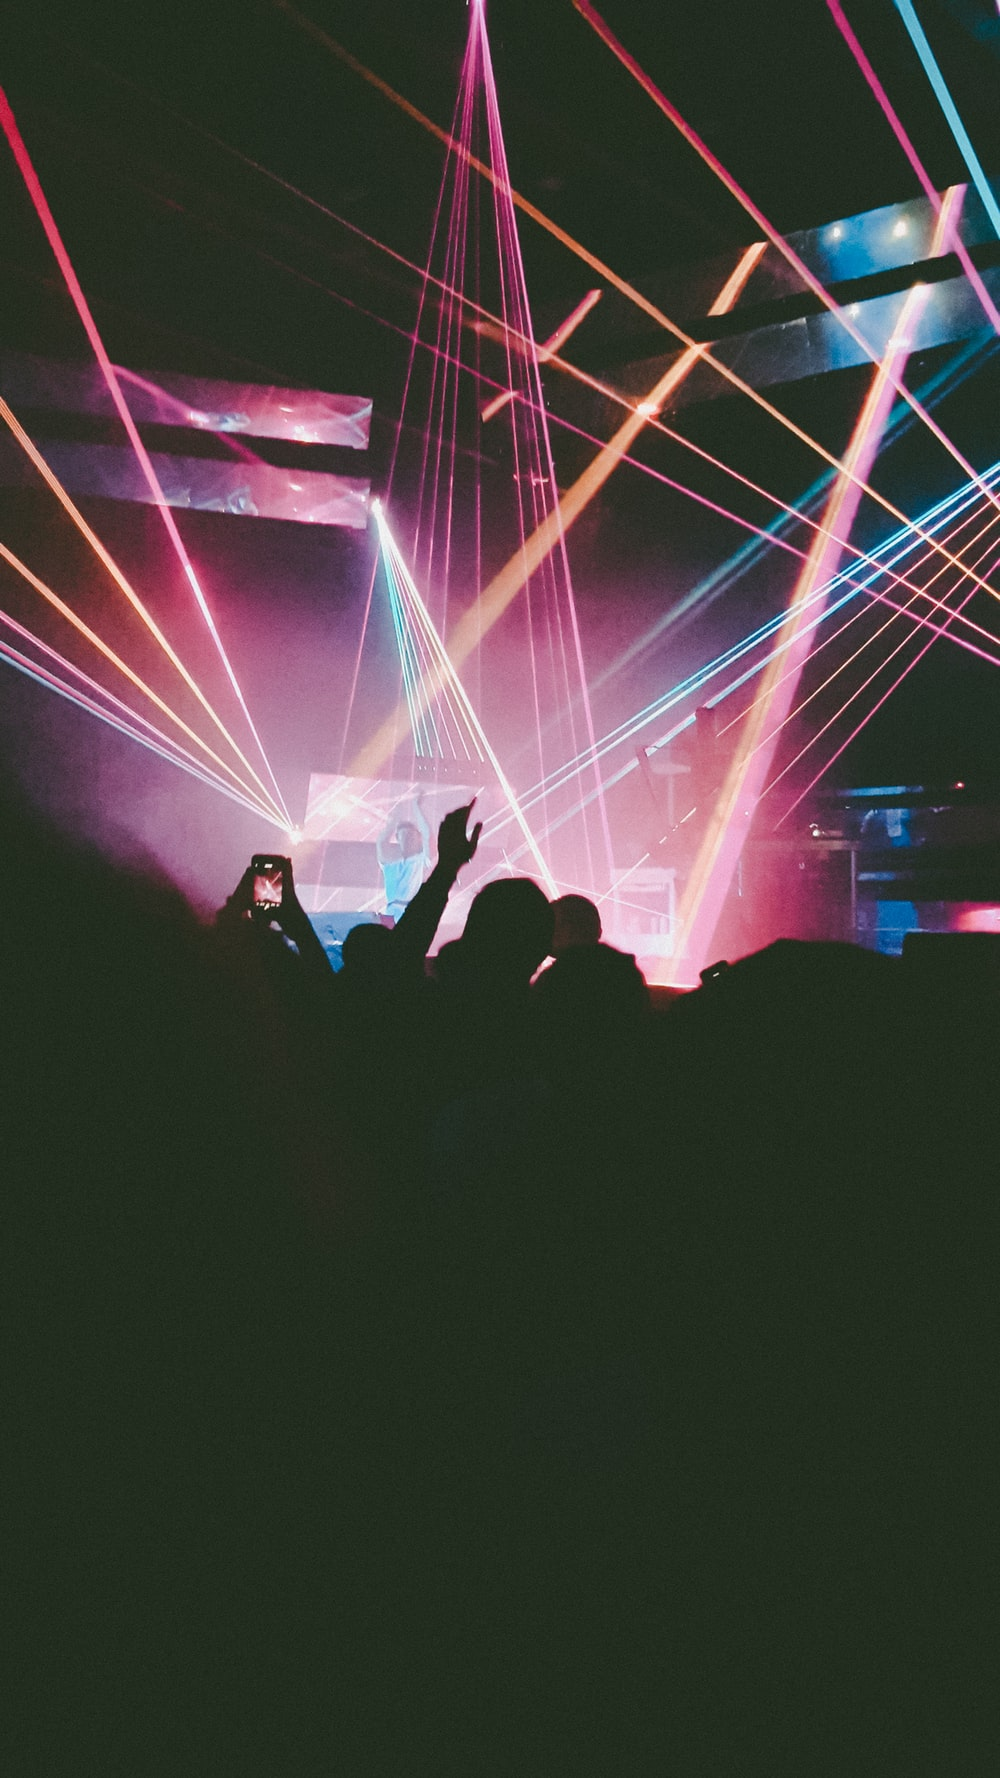 people performing on stage with lights in front of crowd